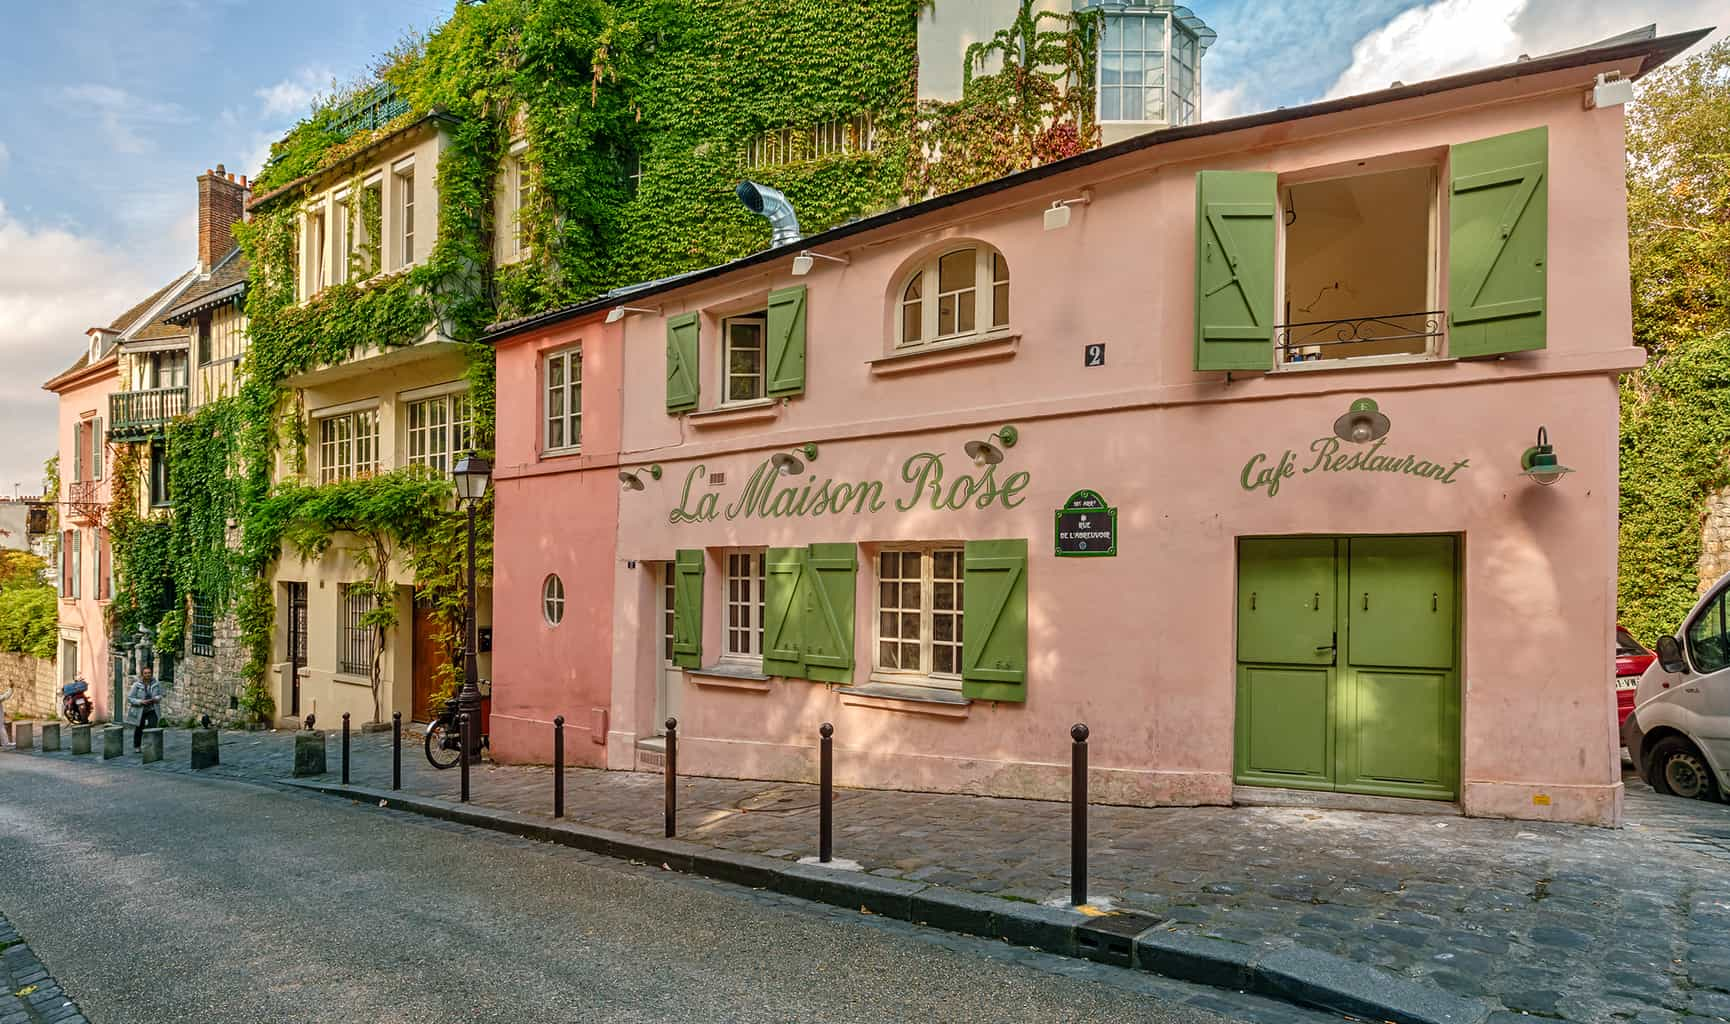 The beautiful, pale pink and lime green exterior of La Maison Rose in Montmartre, Paris.